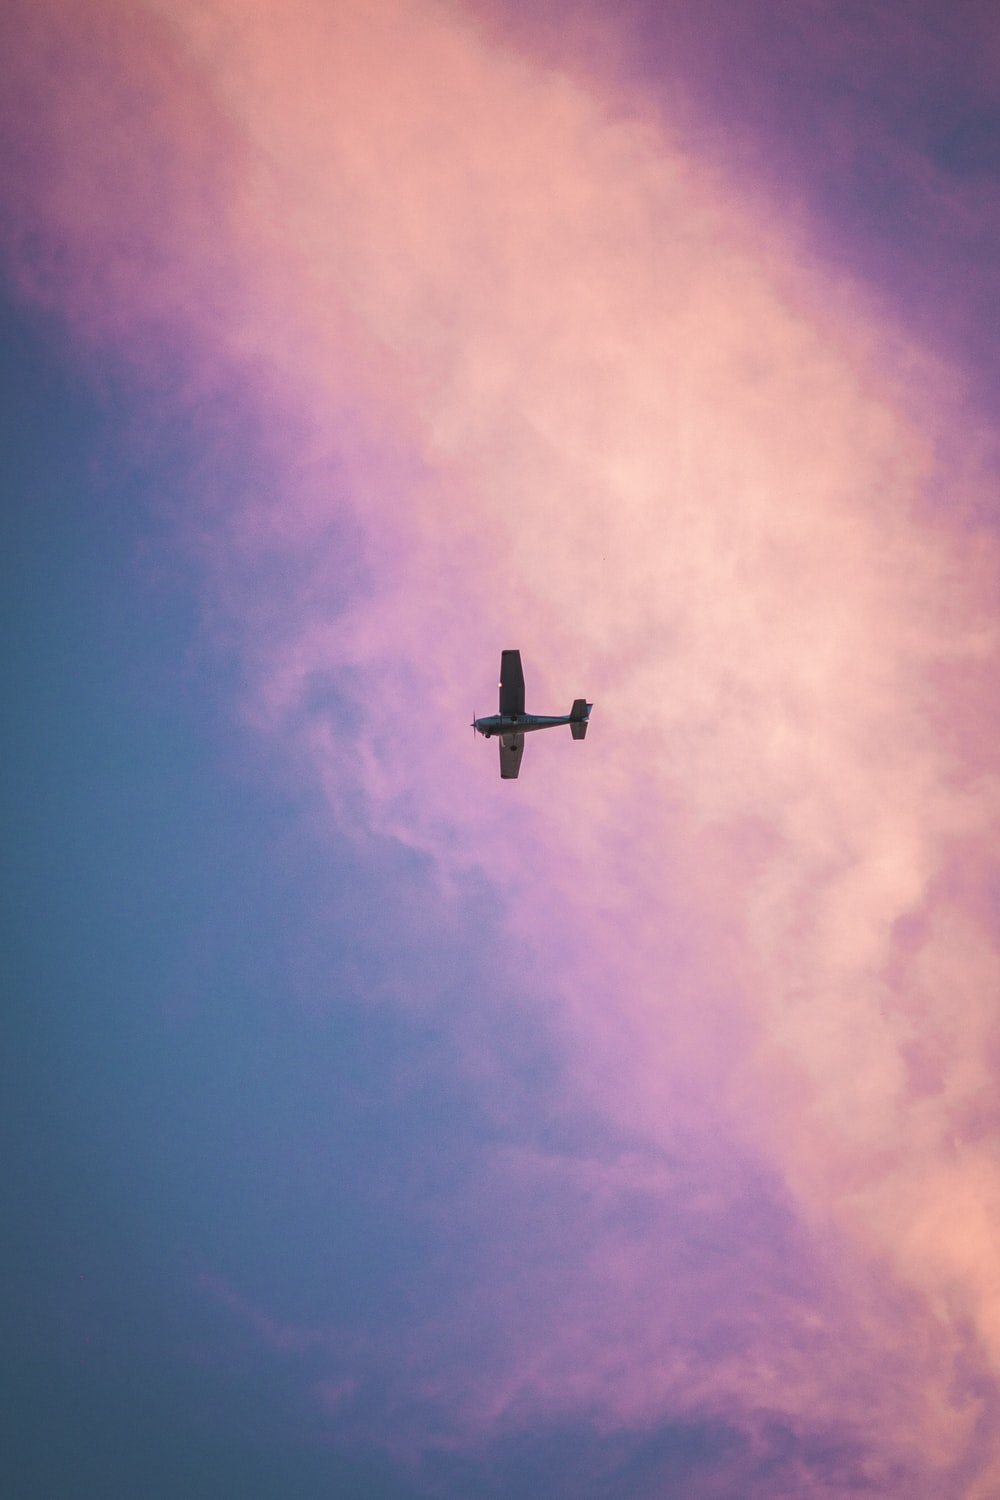 airplane in midair during day